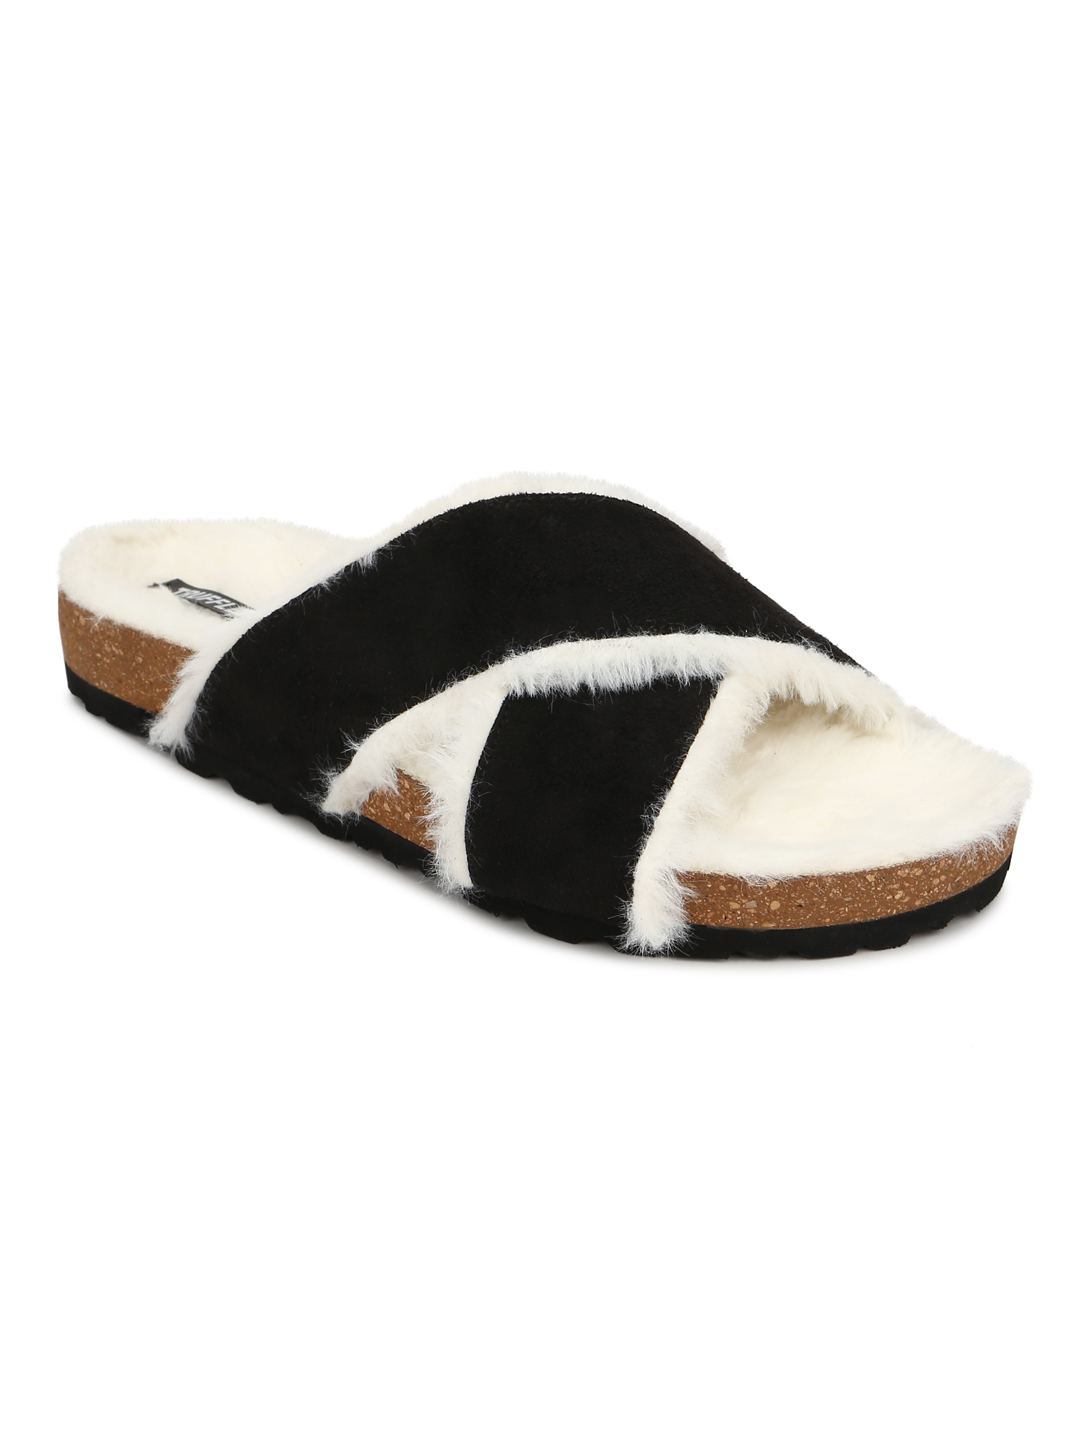 Truffle Collection | Truffle Collection Black Furry Crisscross Strap Cork Sandals